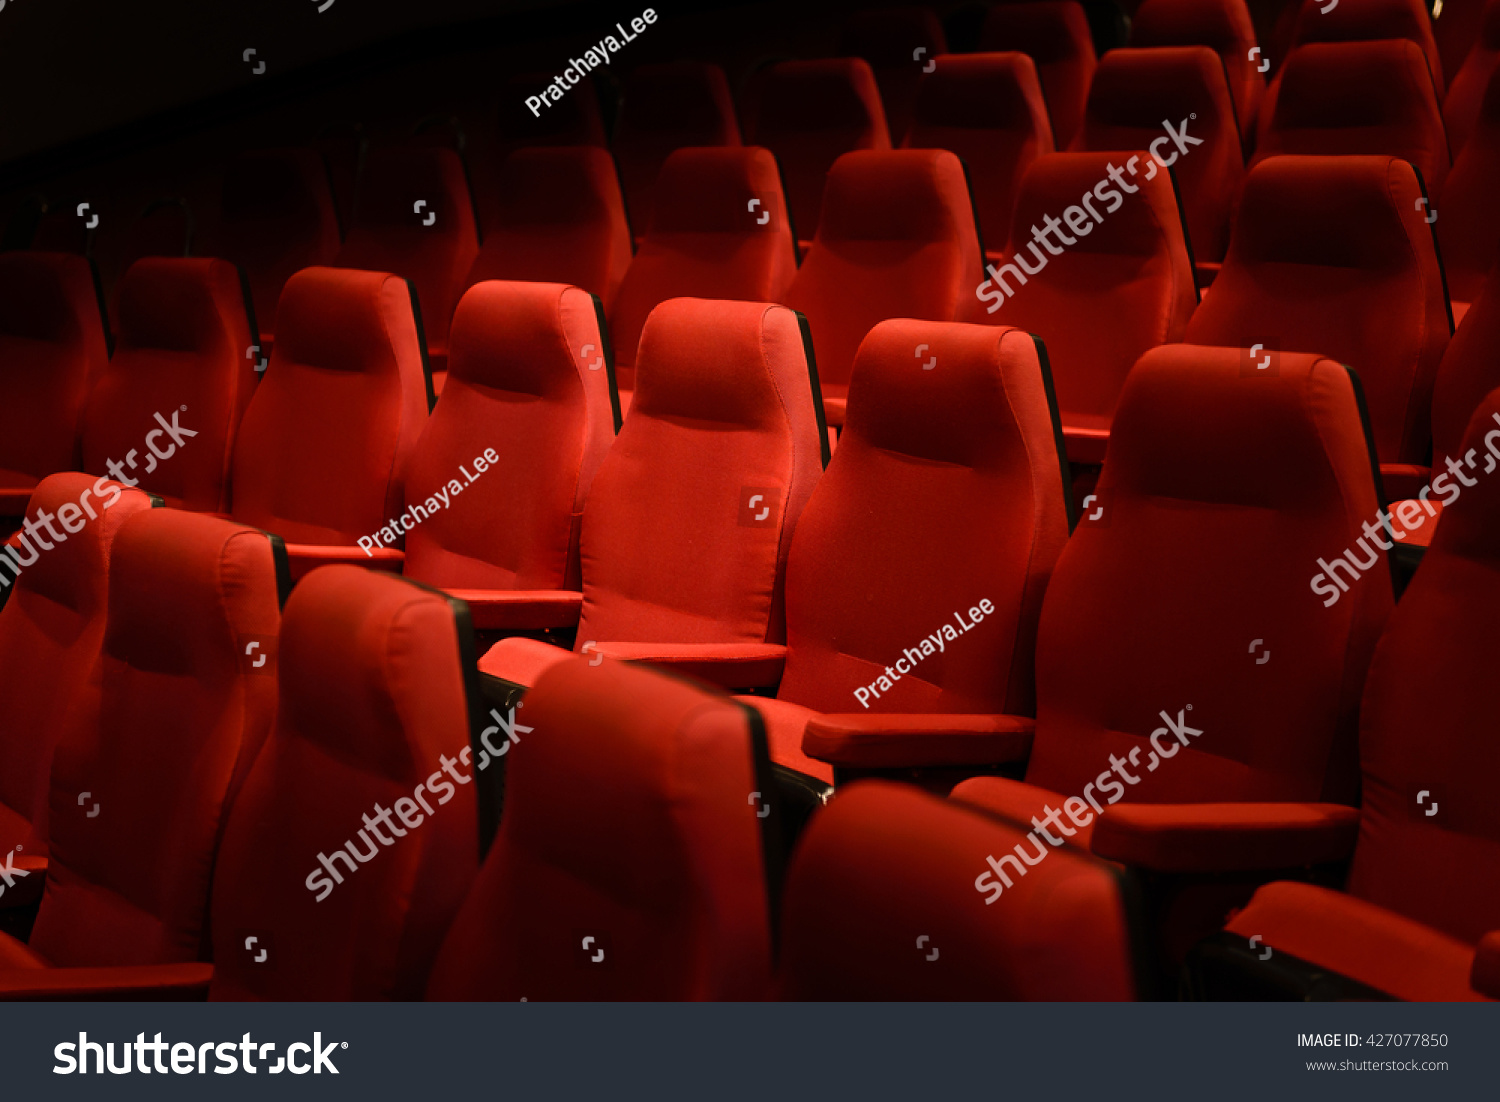 Interiors Empty Red Cinema Chairs, Red Seats. Low Key